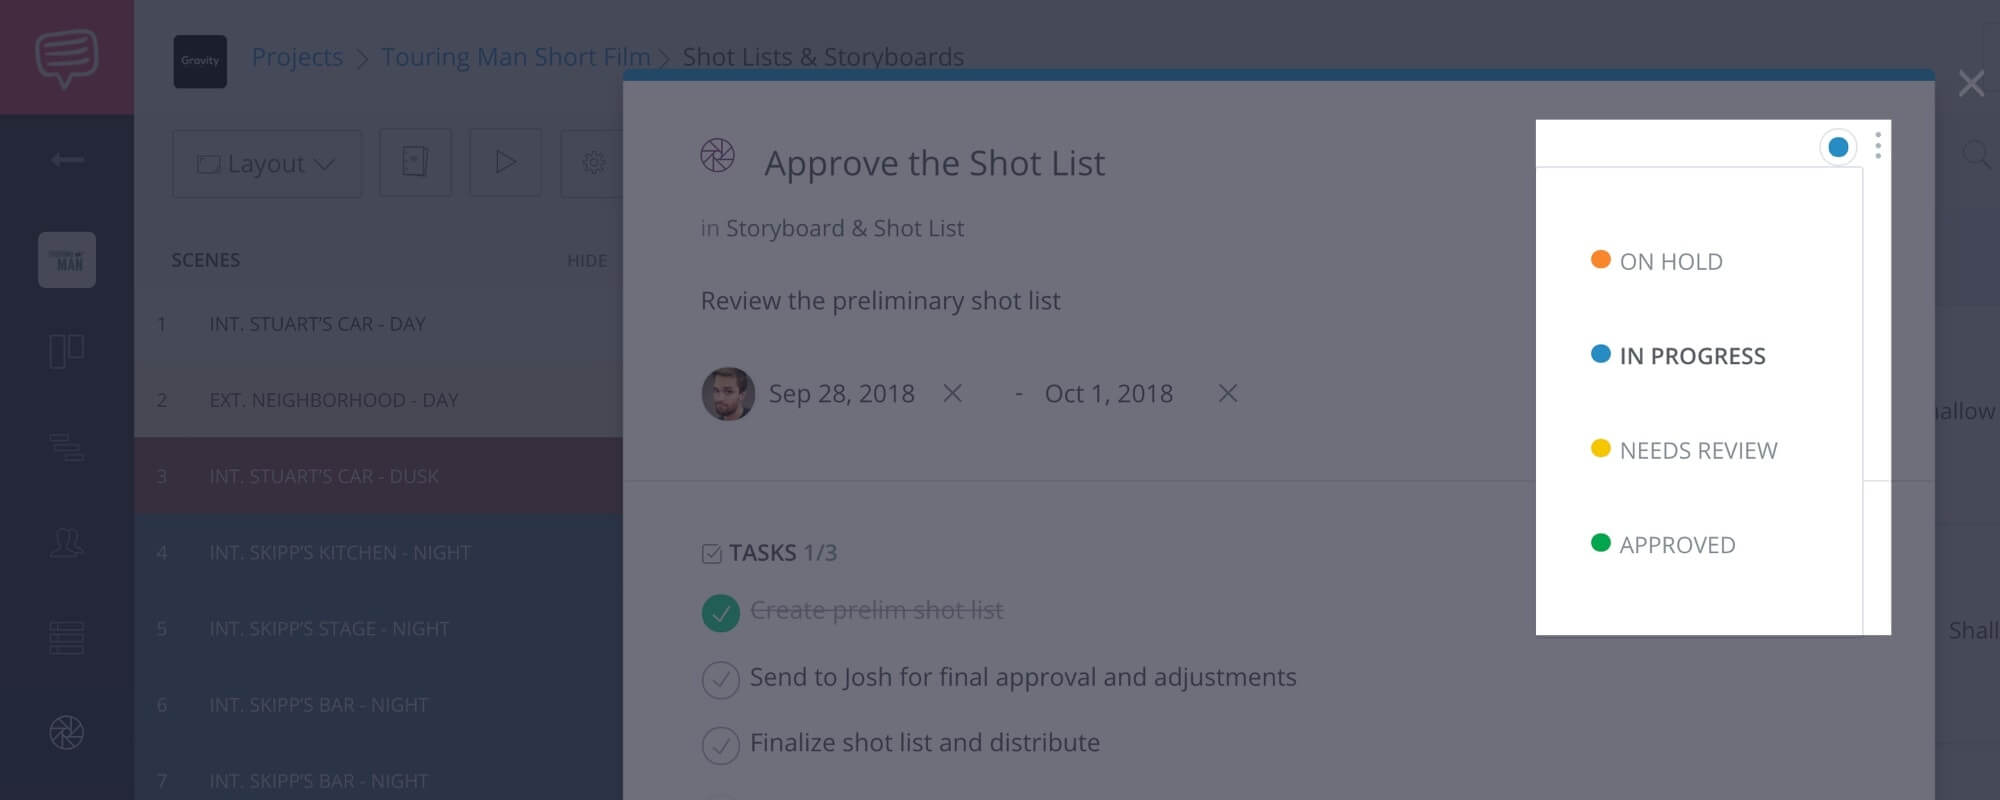 How to Create a Shot List with StudioBinder - Shot List Creator Template - 20